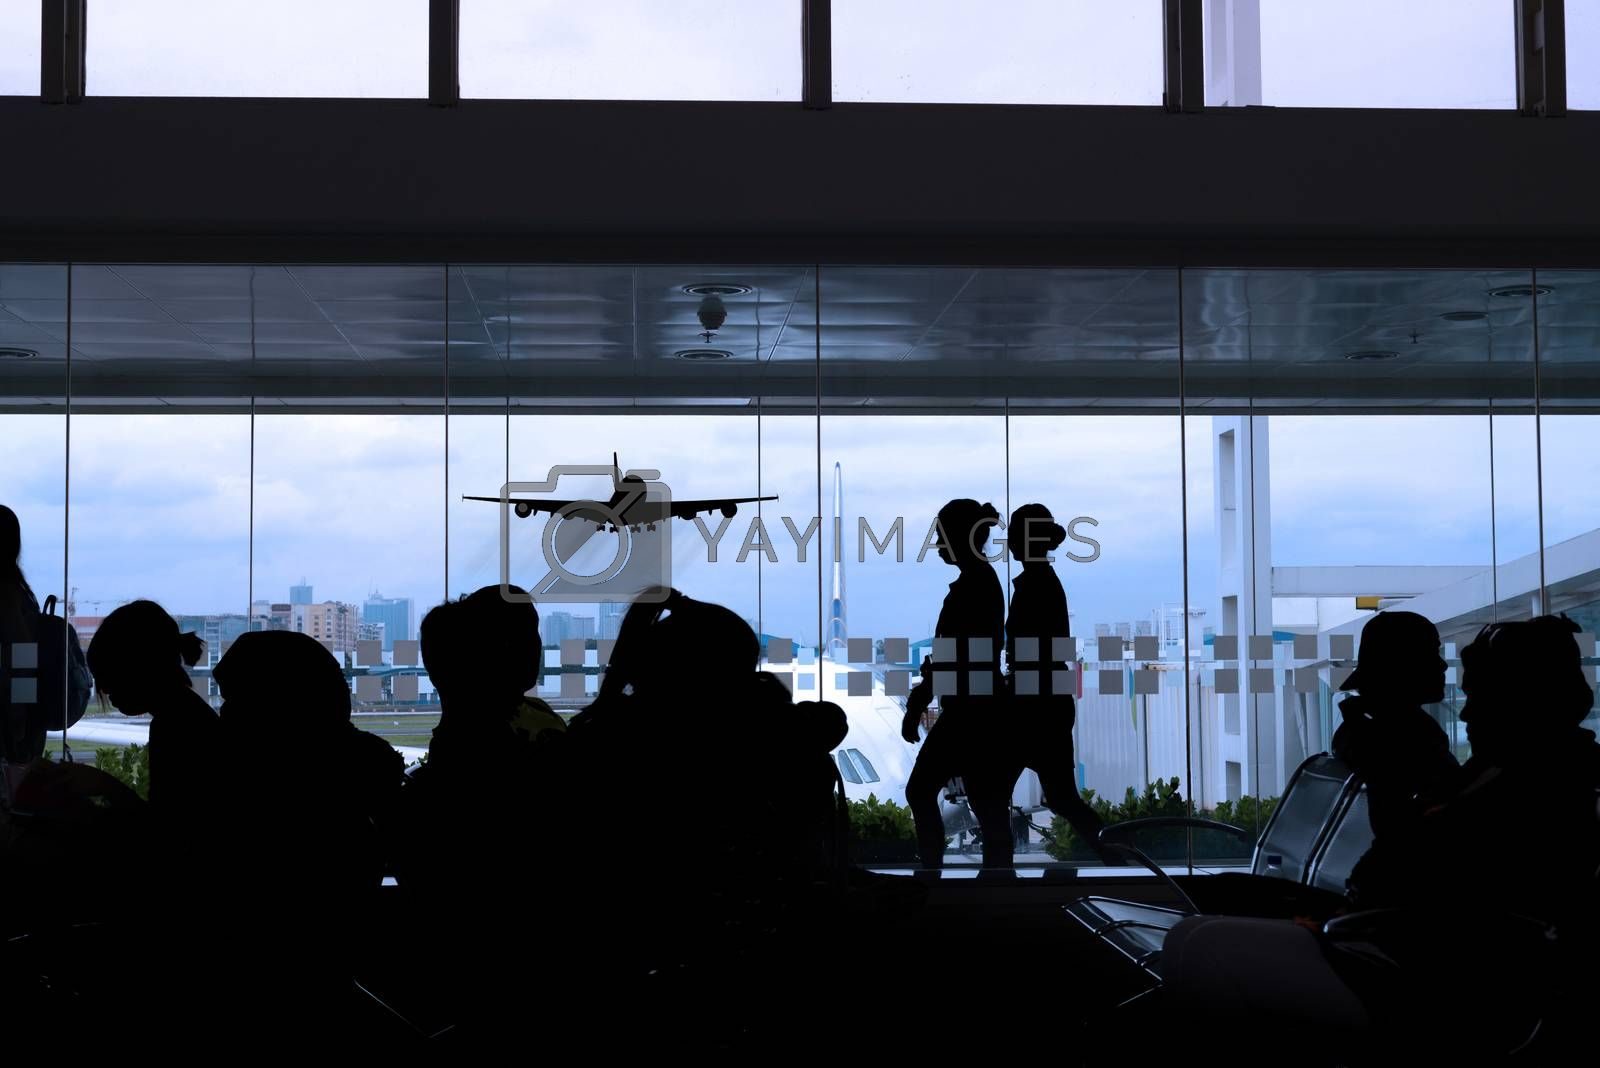 silhouette of airport lounge by morrbyte